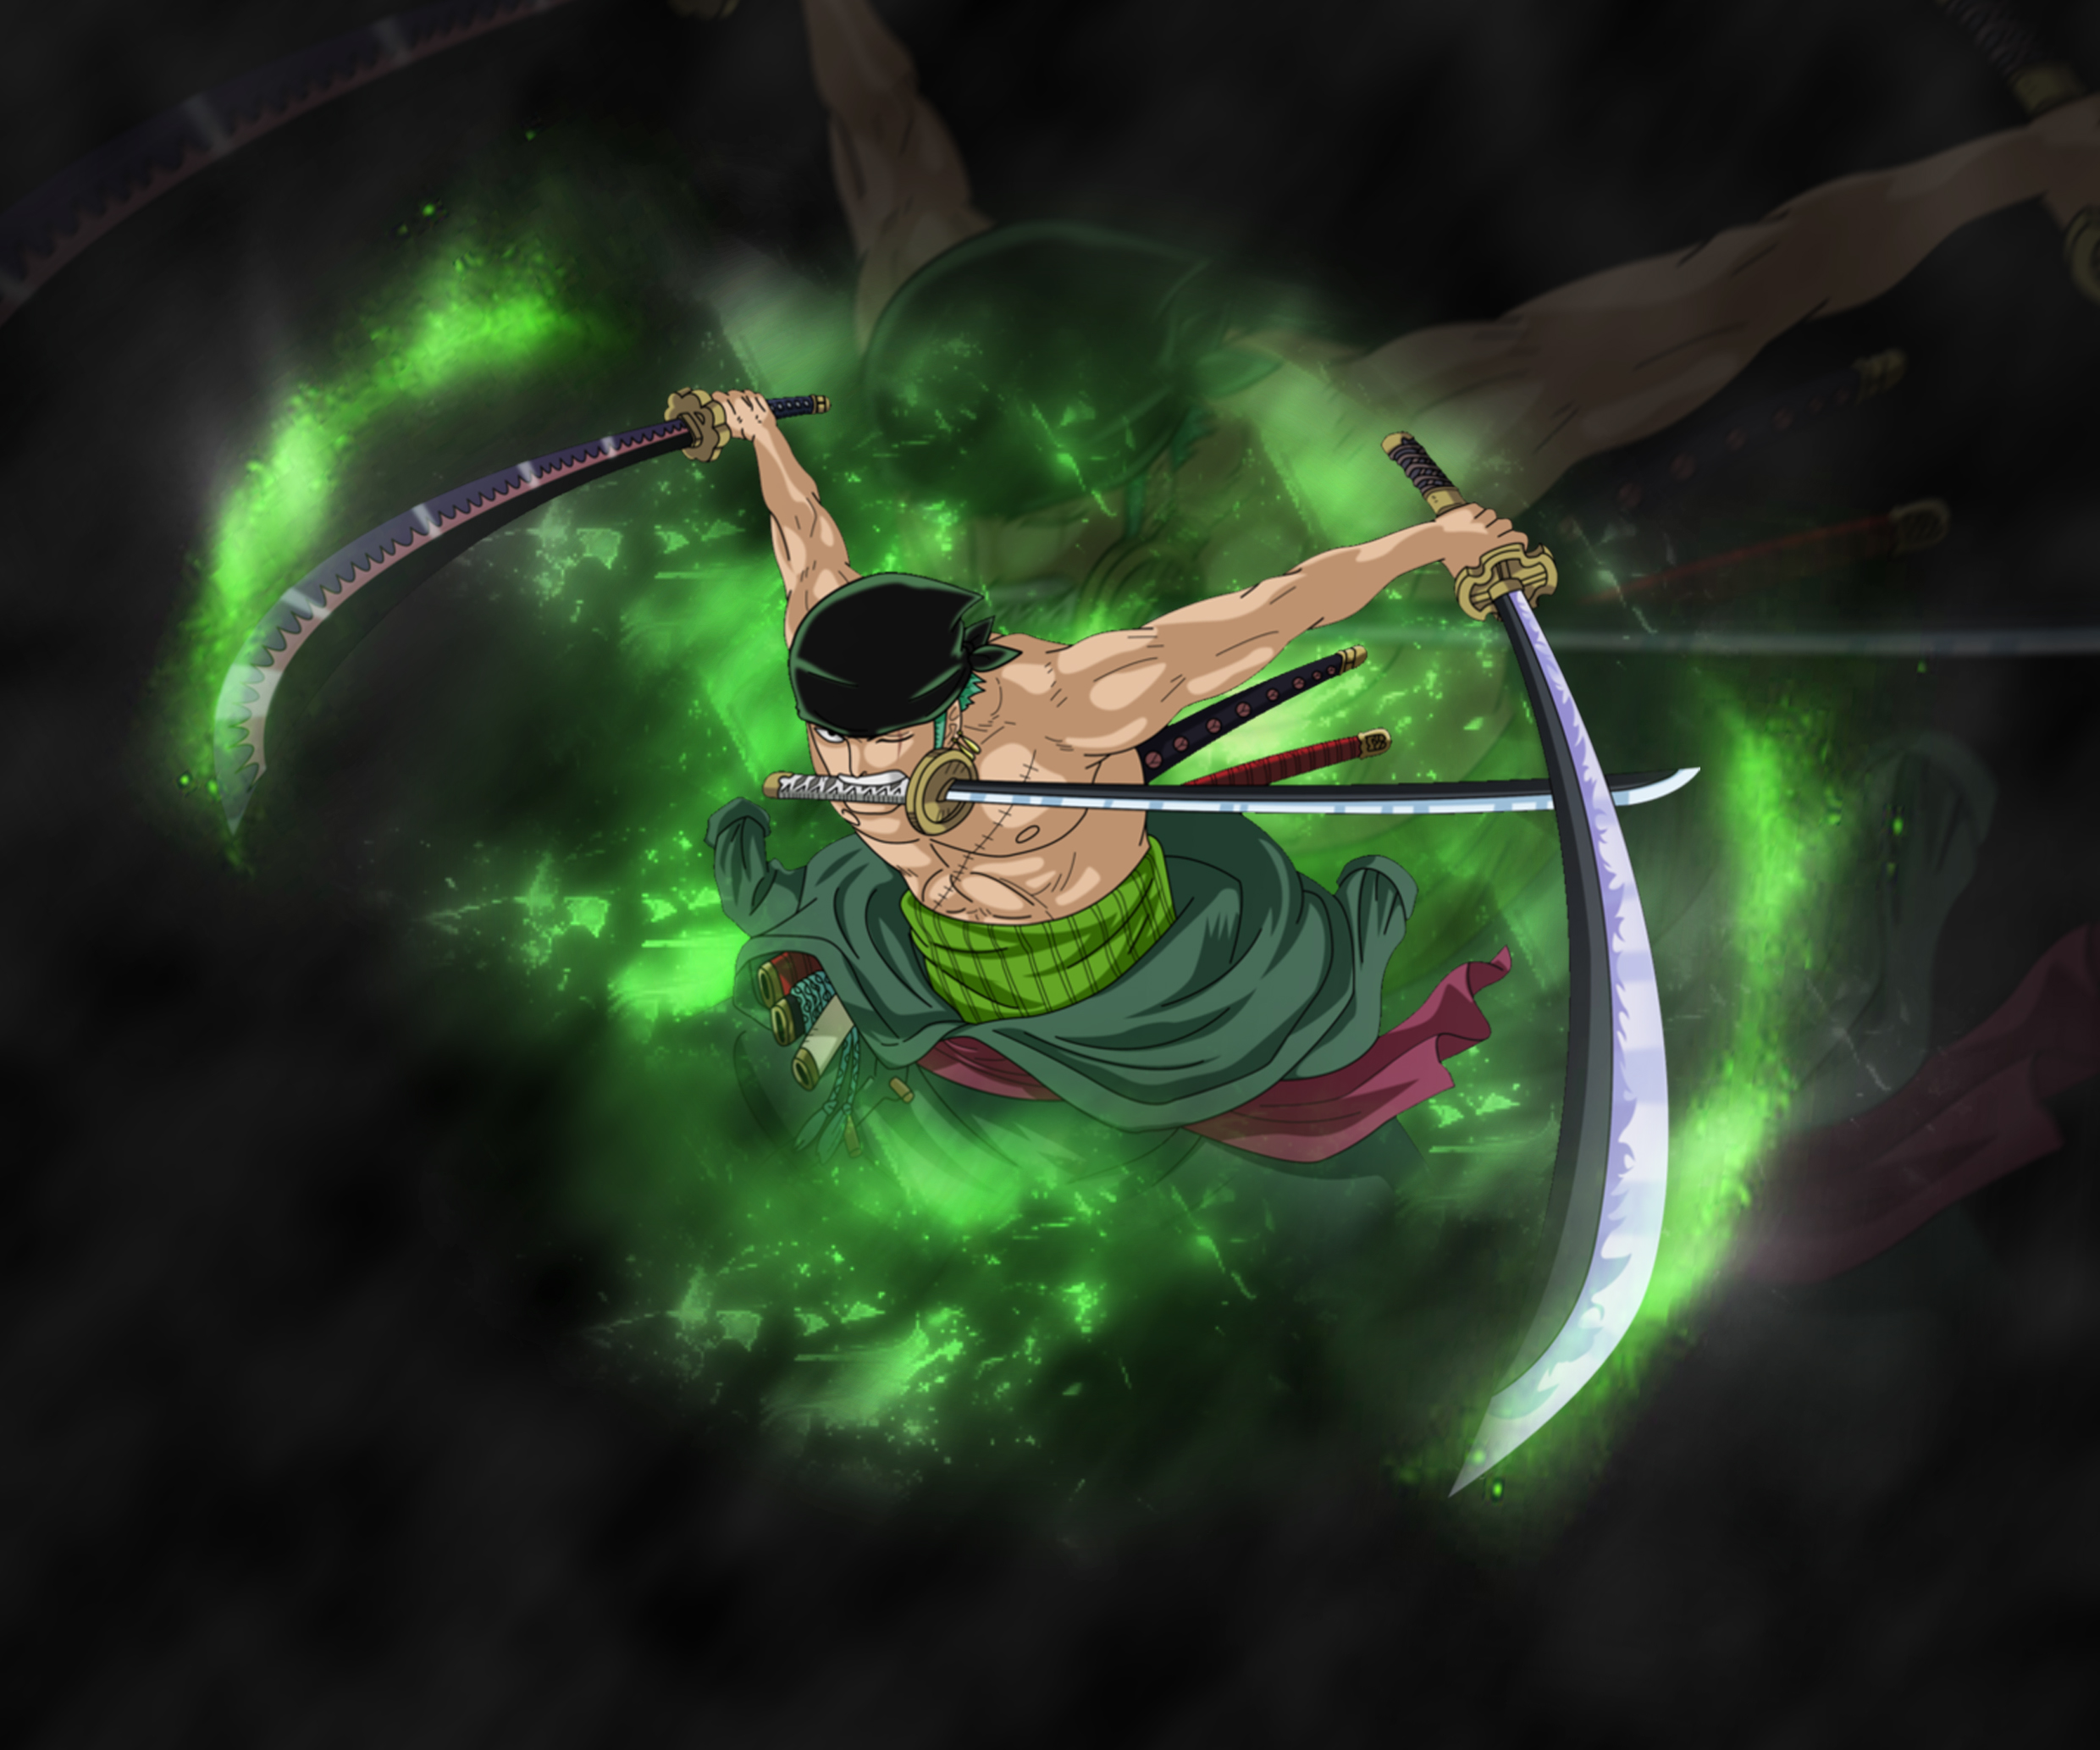 One Piece Zoro Wallpaper: One Piece By EnrestoxD On DeviantArt